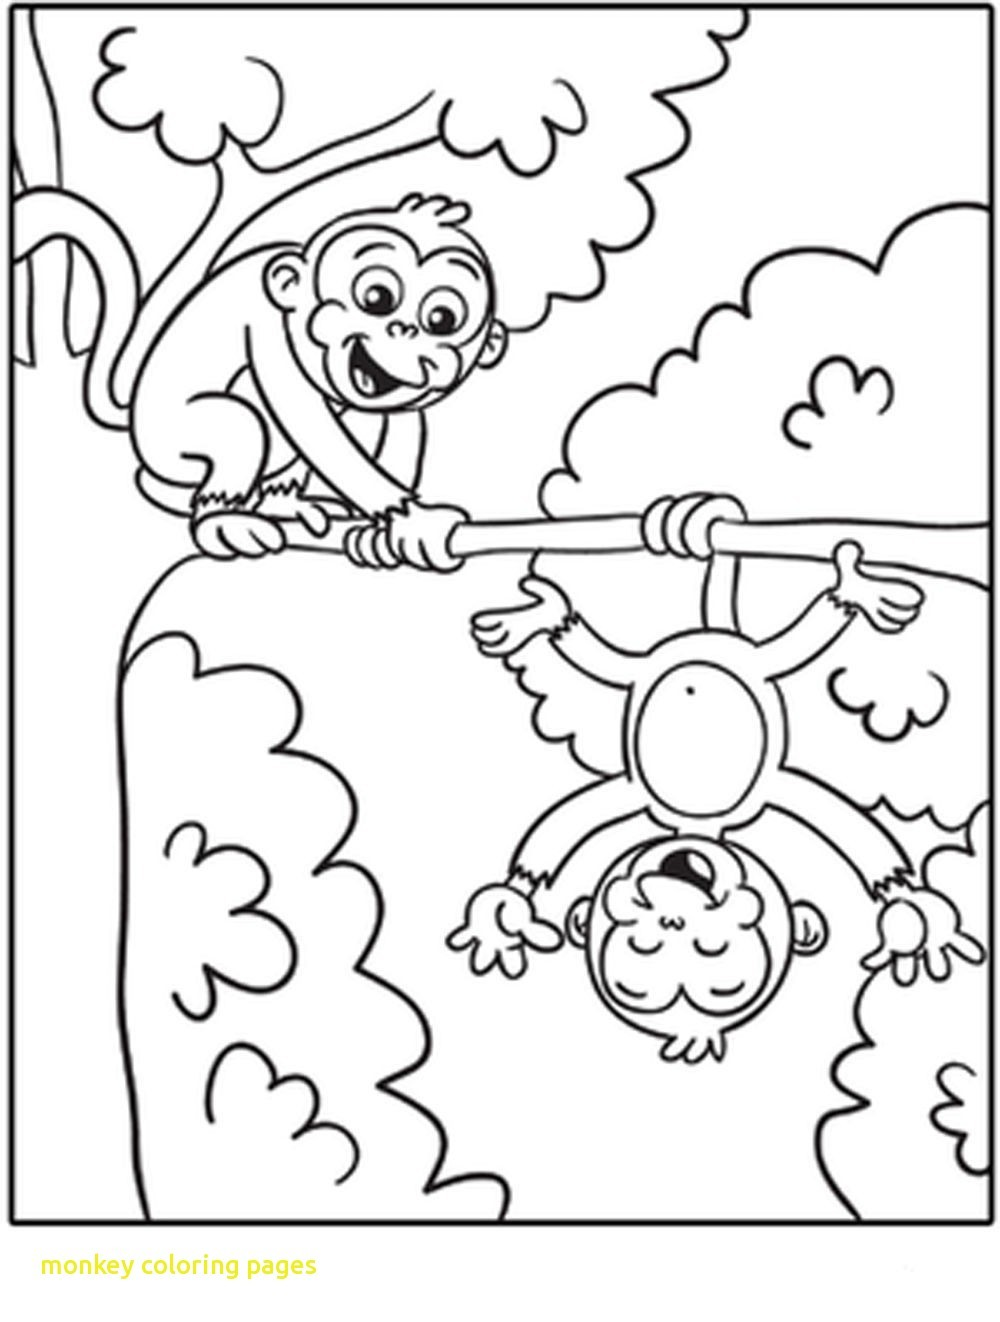 1000x1322 Bargain Coloring Pages Of A Monkey Free Printable For Kids